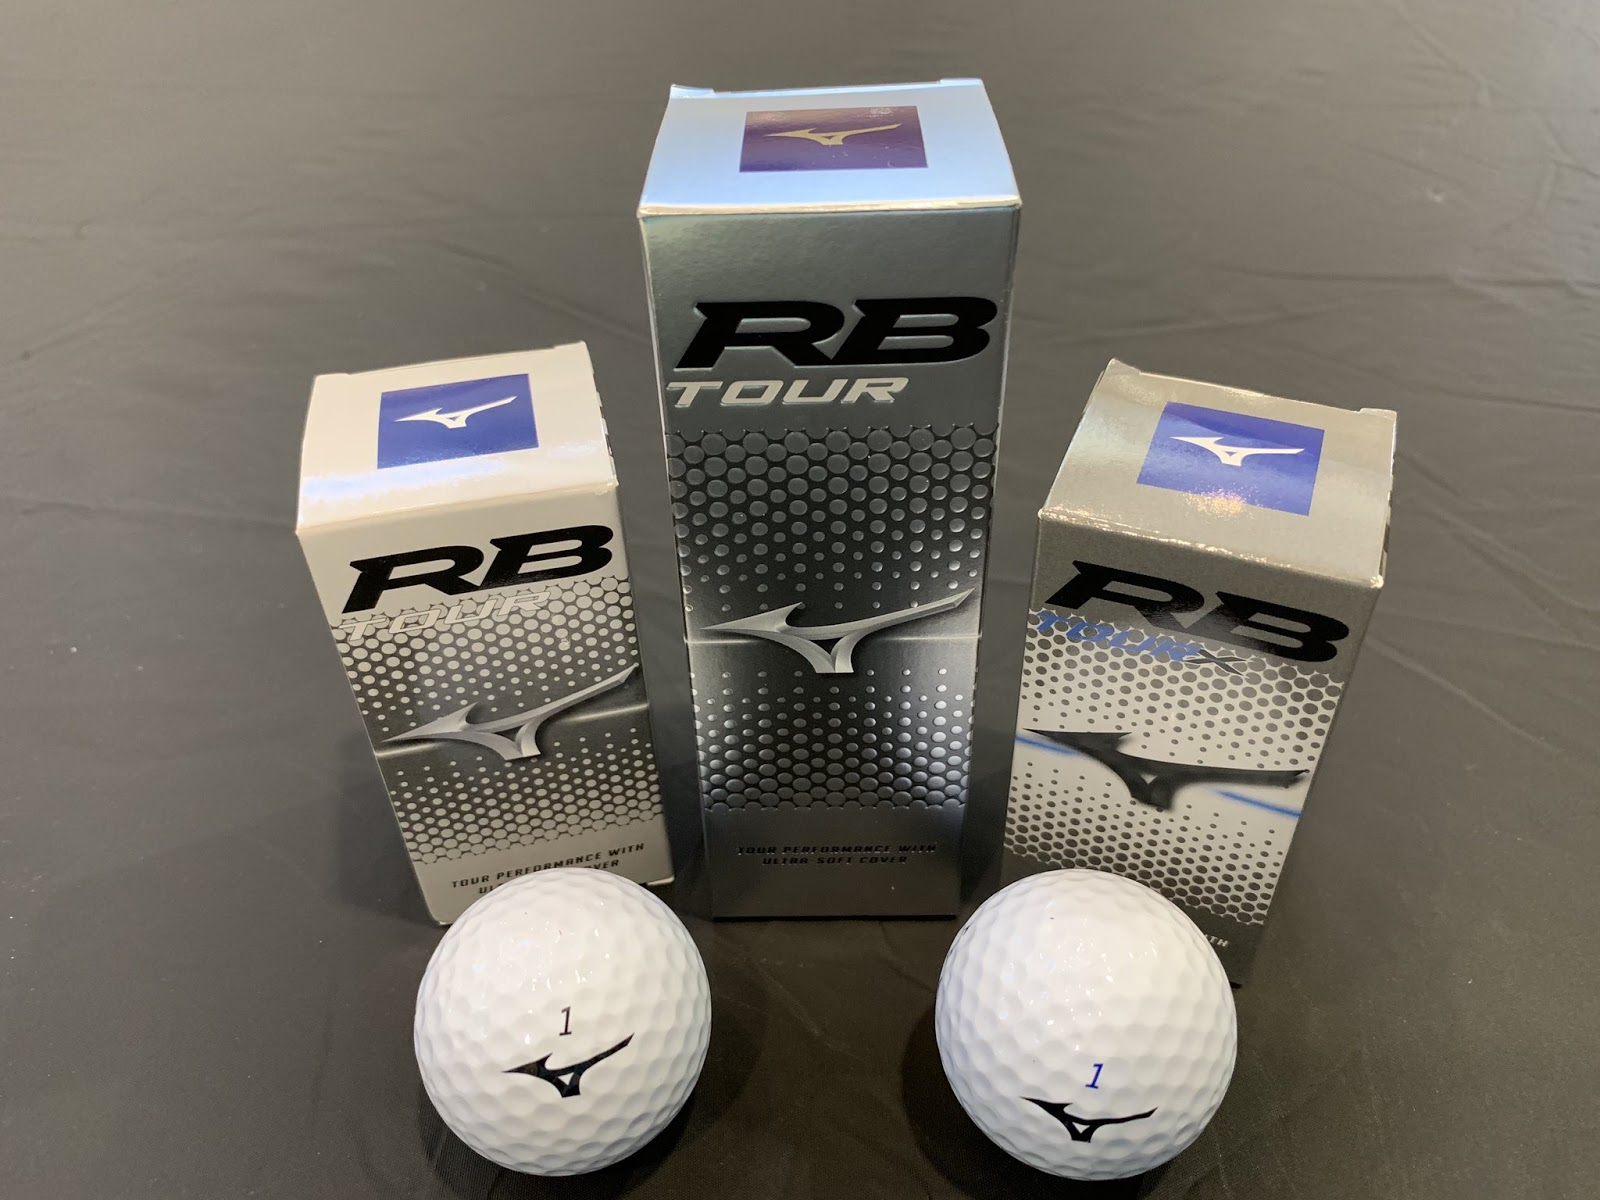 ed1bd119dcd7 And Mizuno is bringing the new tour-caliber RB Tour and RB Tour X balls to  the United States for the first time in company history as part of their  2019 ...